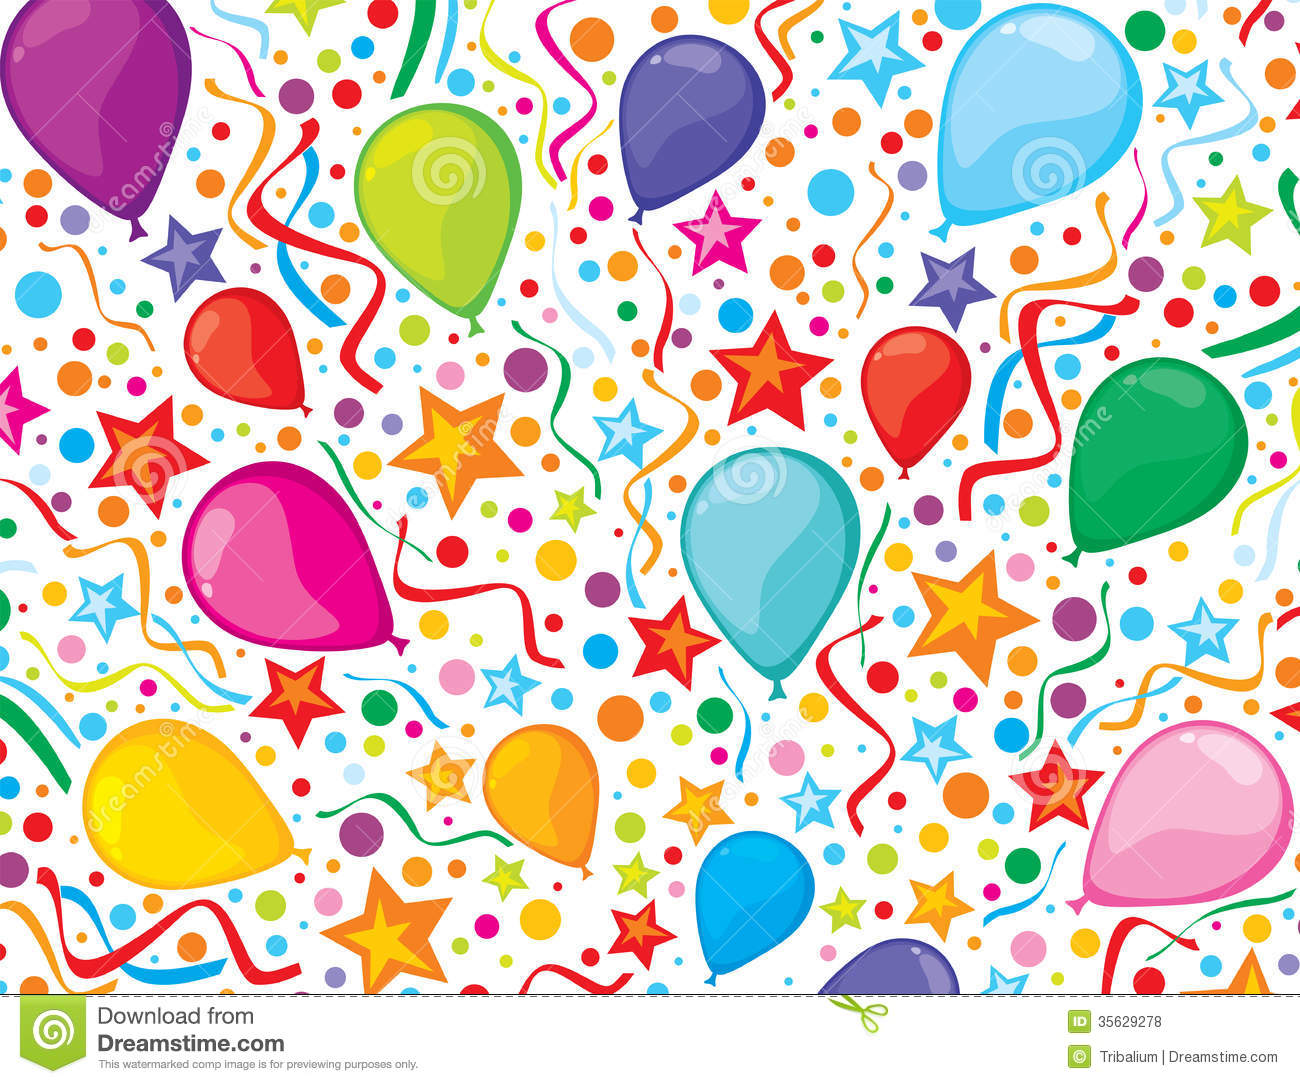 birthday party wallpaper background ; birthday-background-party-streamers-confe-colorful-balloons-design-childrens-design-kids-35629278